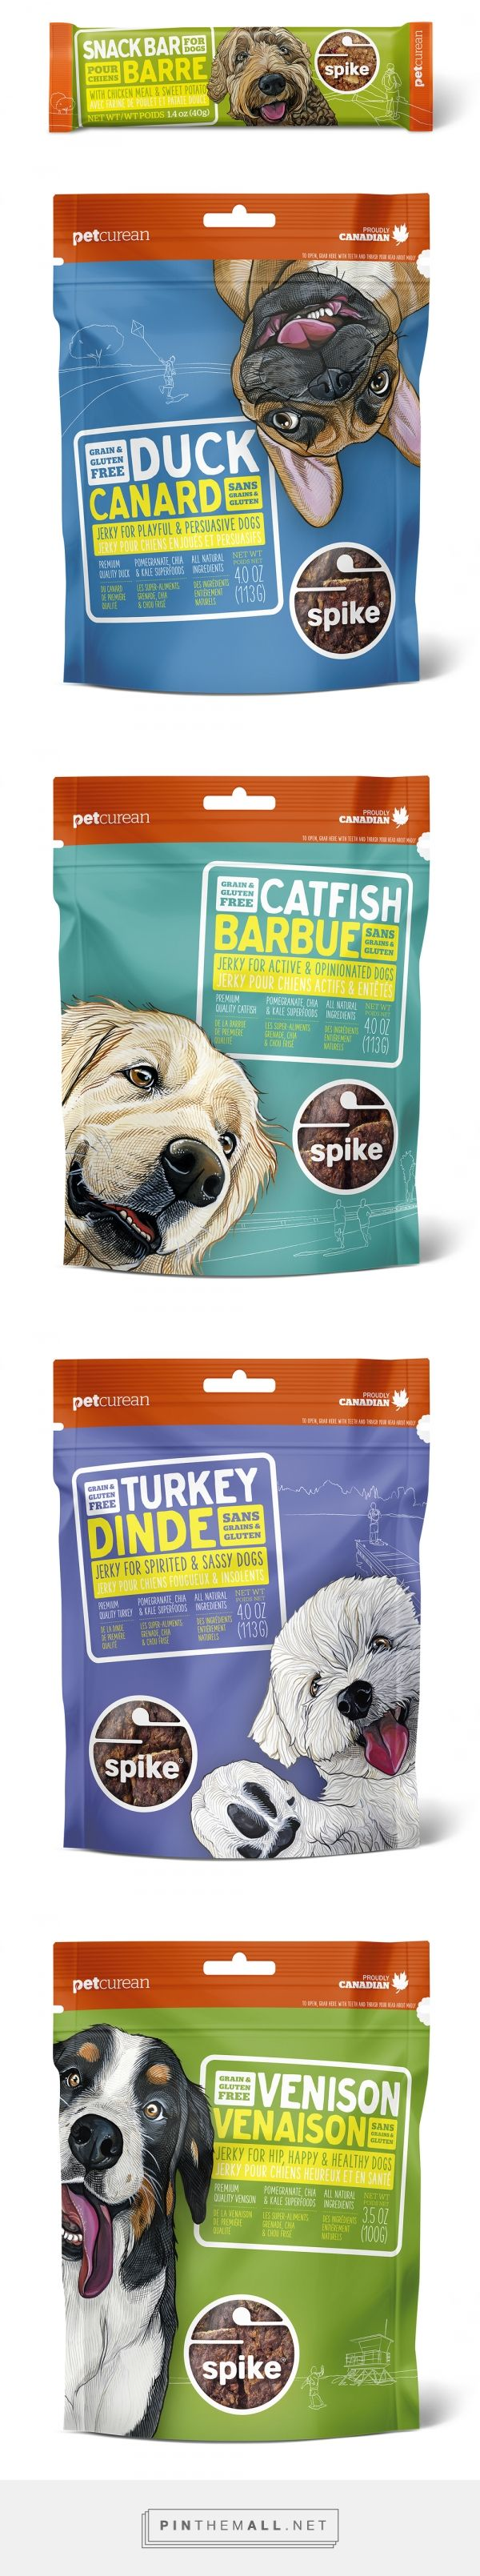 1266e7090608a2696730356fc8574c89--pet-logo-pet-food-logo